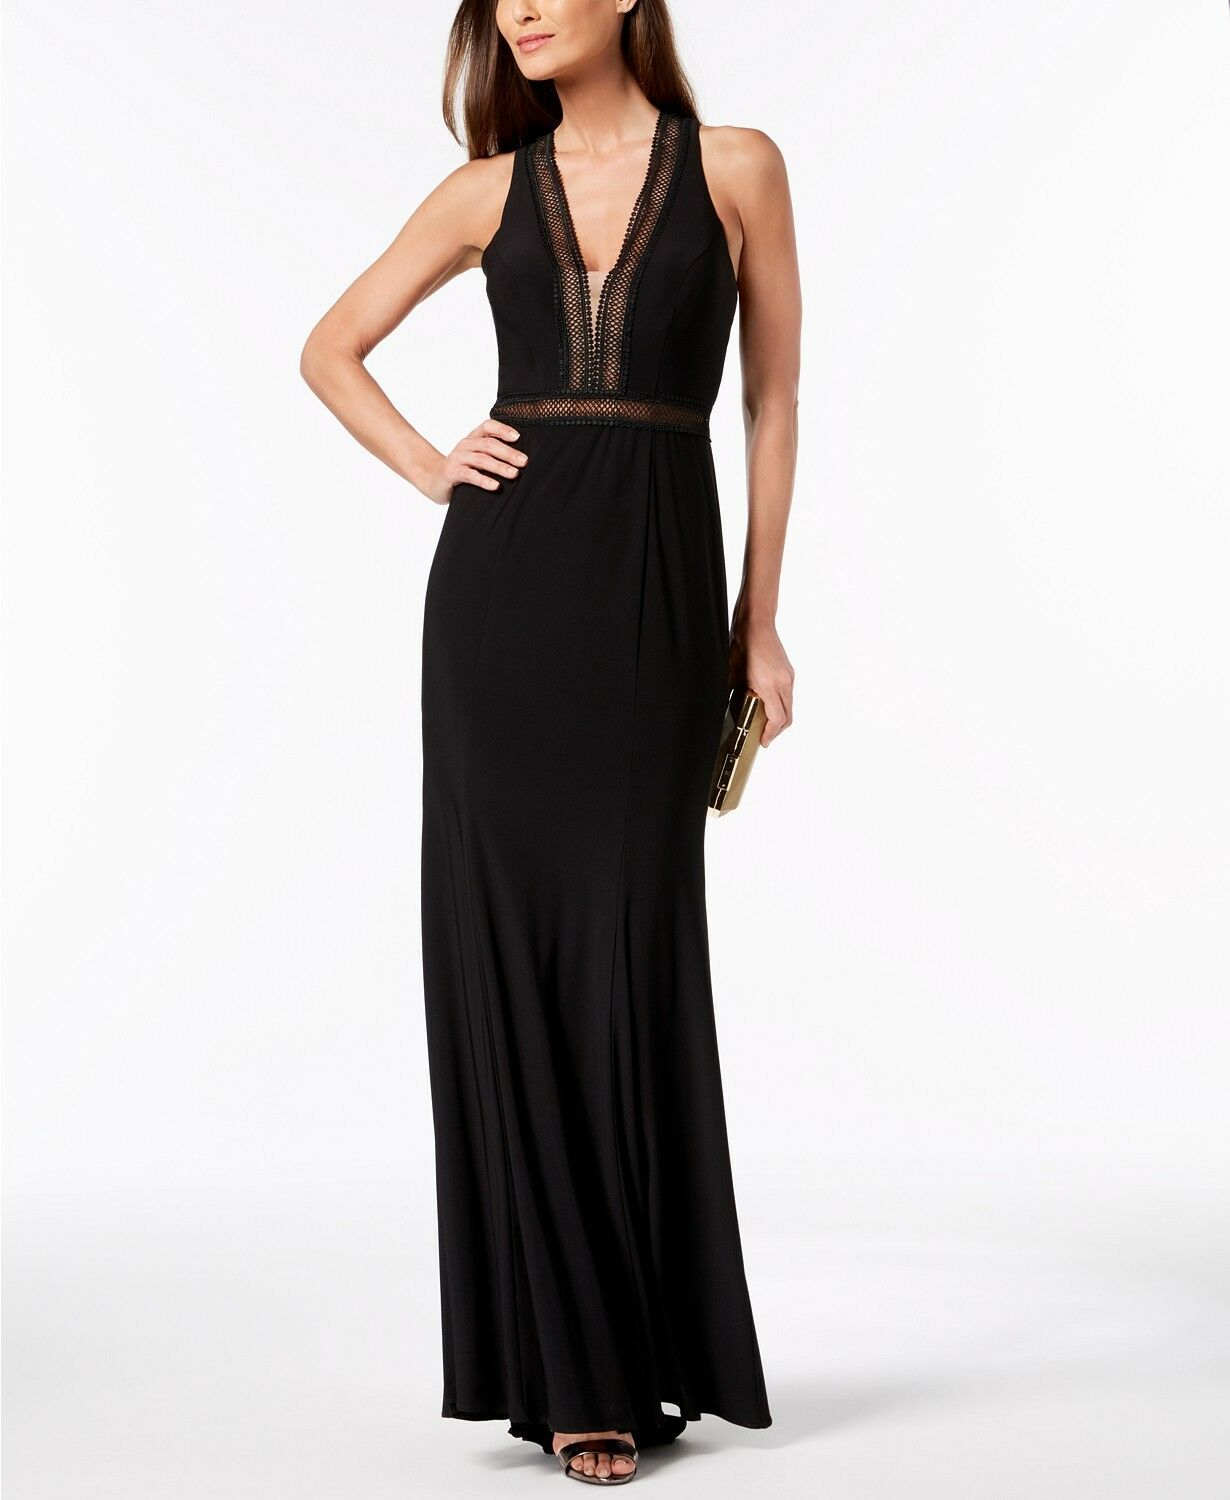 XSCAPE Crochet Illusion Gown MSRP  209 Size 2 A 283 NEW